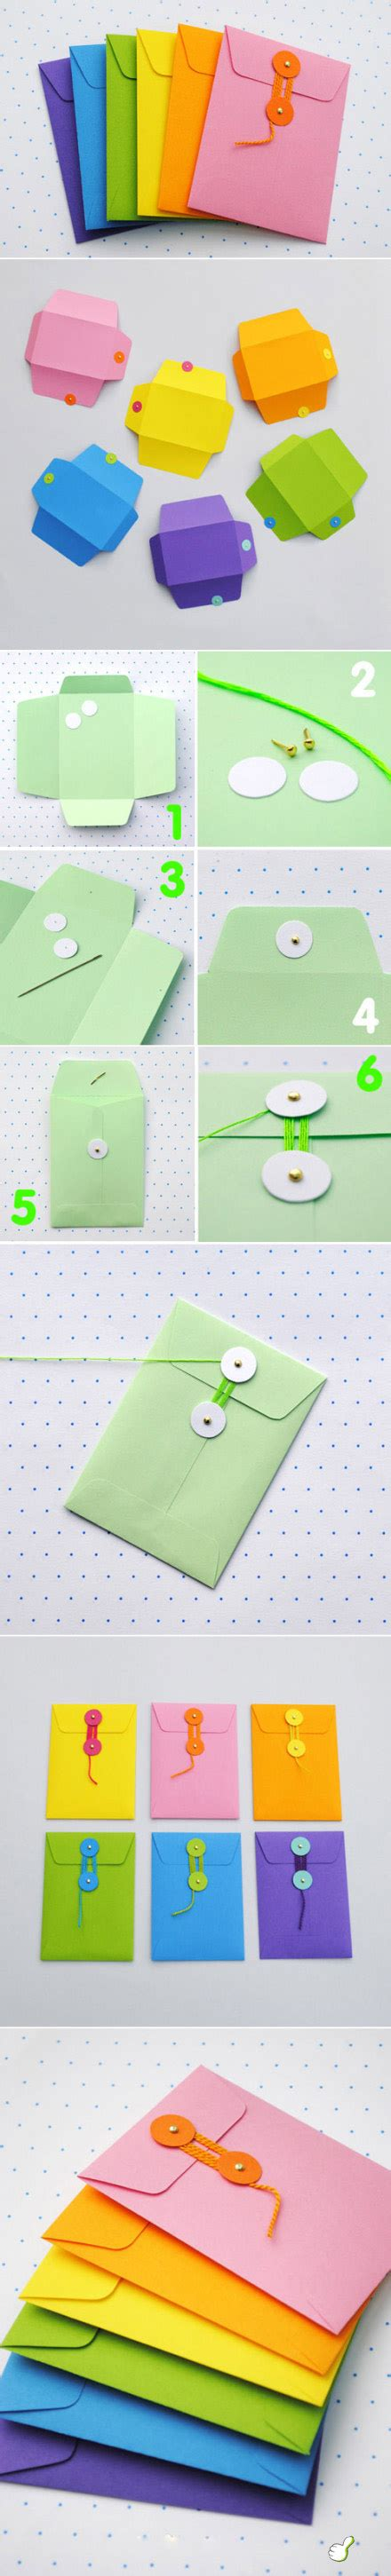 Small Origami Envelope - diy envelopes pictures photos and images for